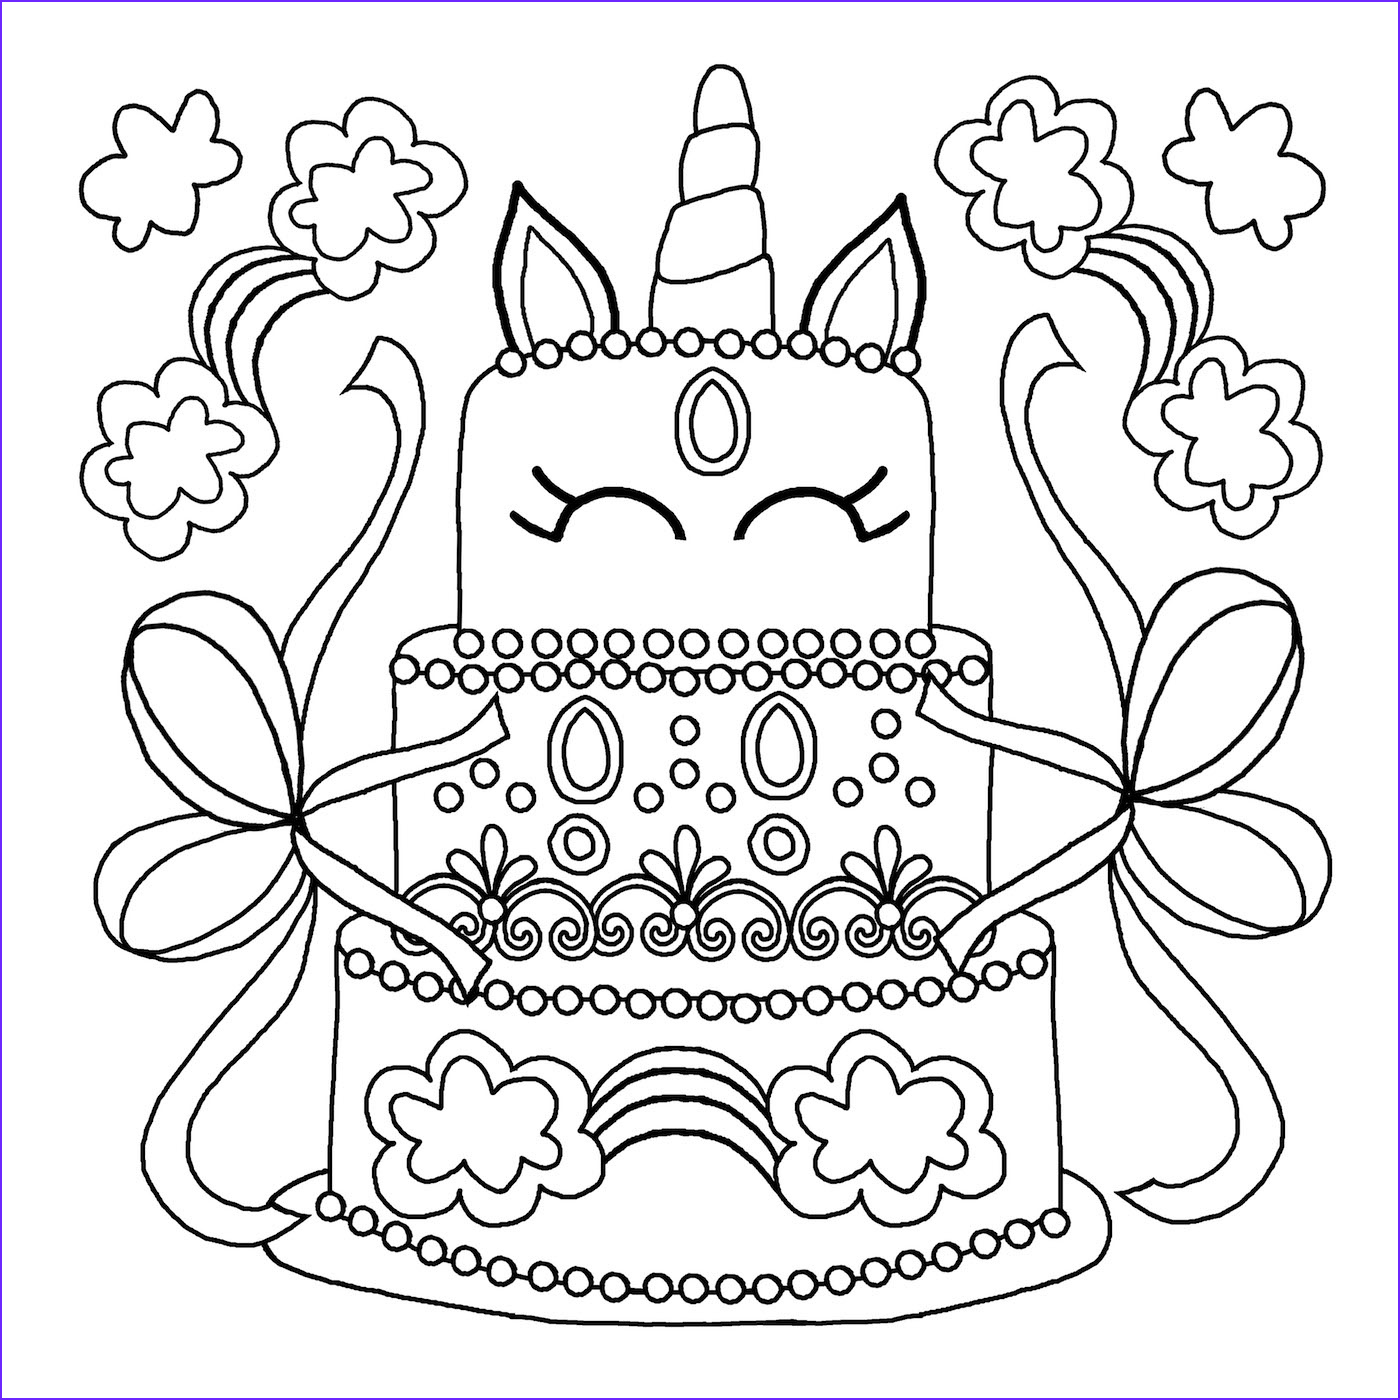 Unicorn Cake Coloring Page Unique Gallery Printable Unicorn Coloring Pages Ideas for Kids